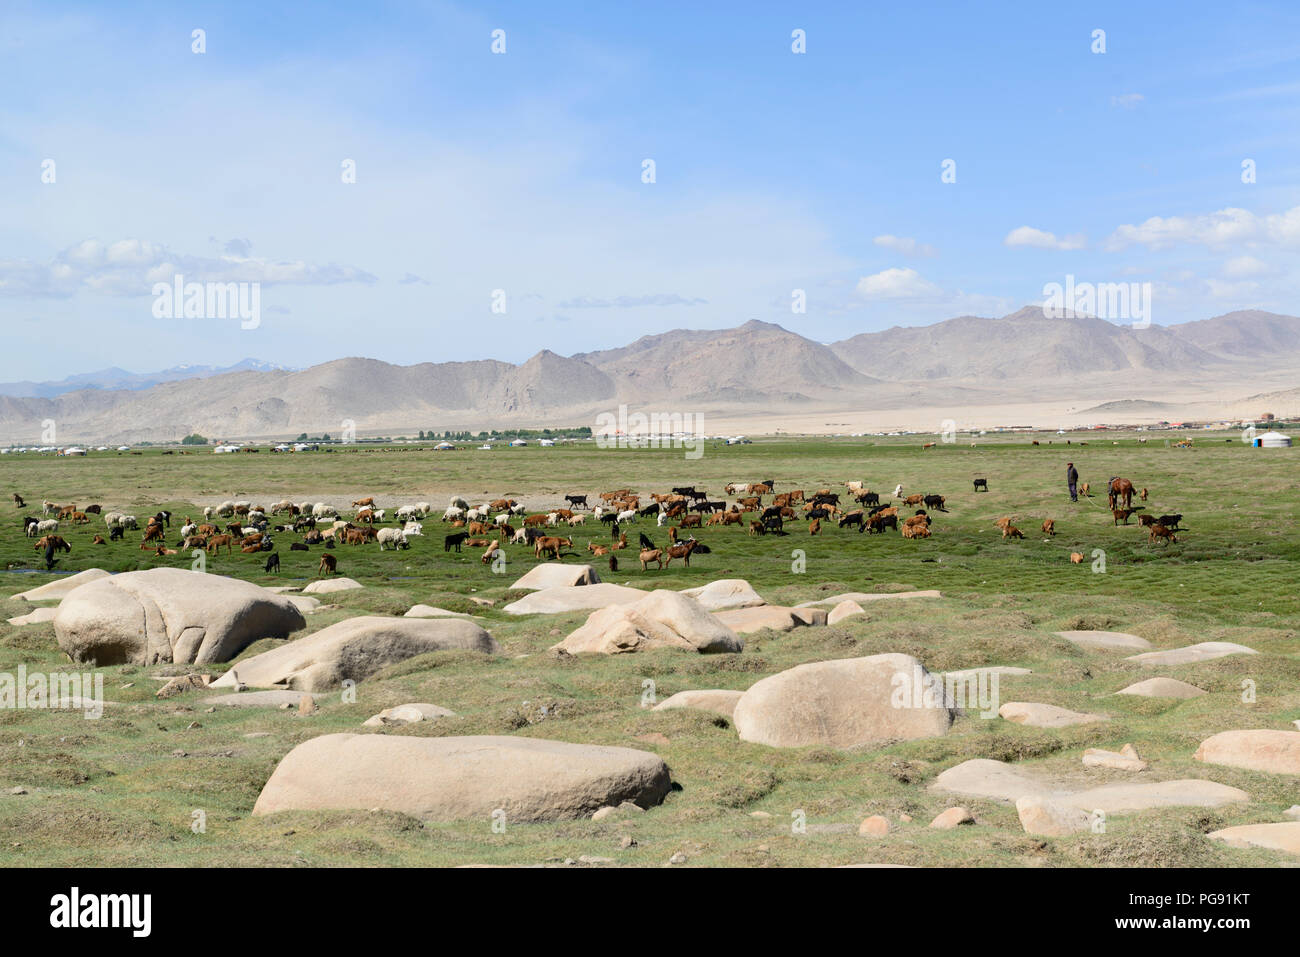 Nomads herding sheep and goats near their gers. - Stock Image